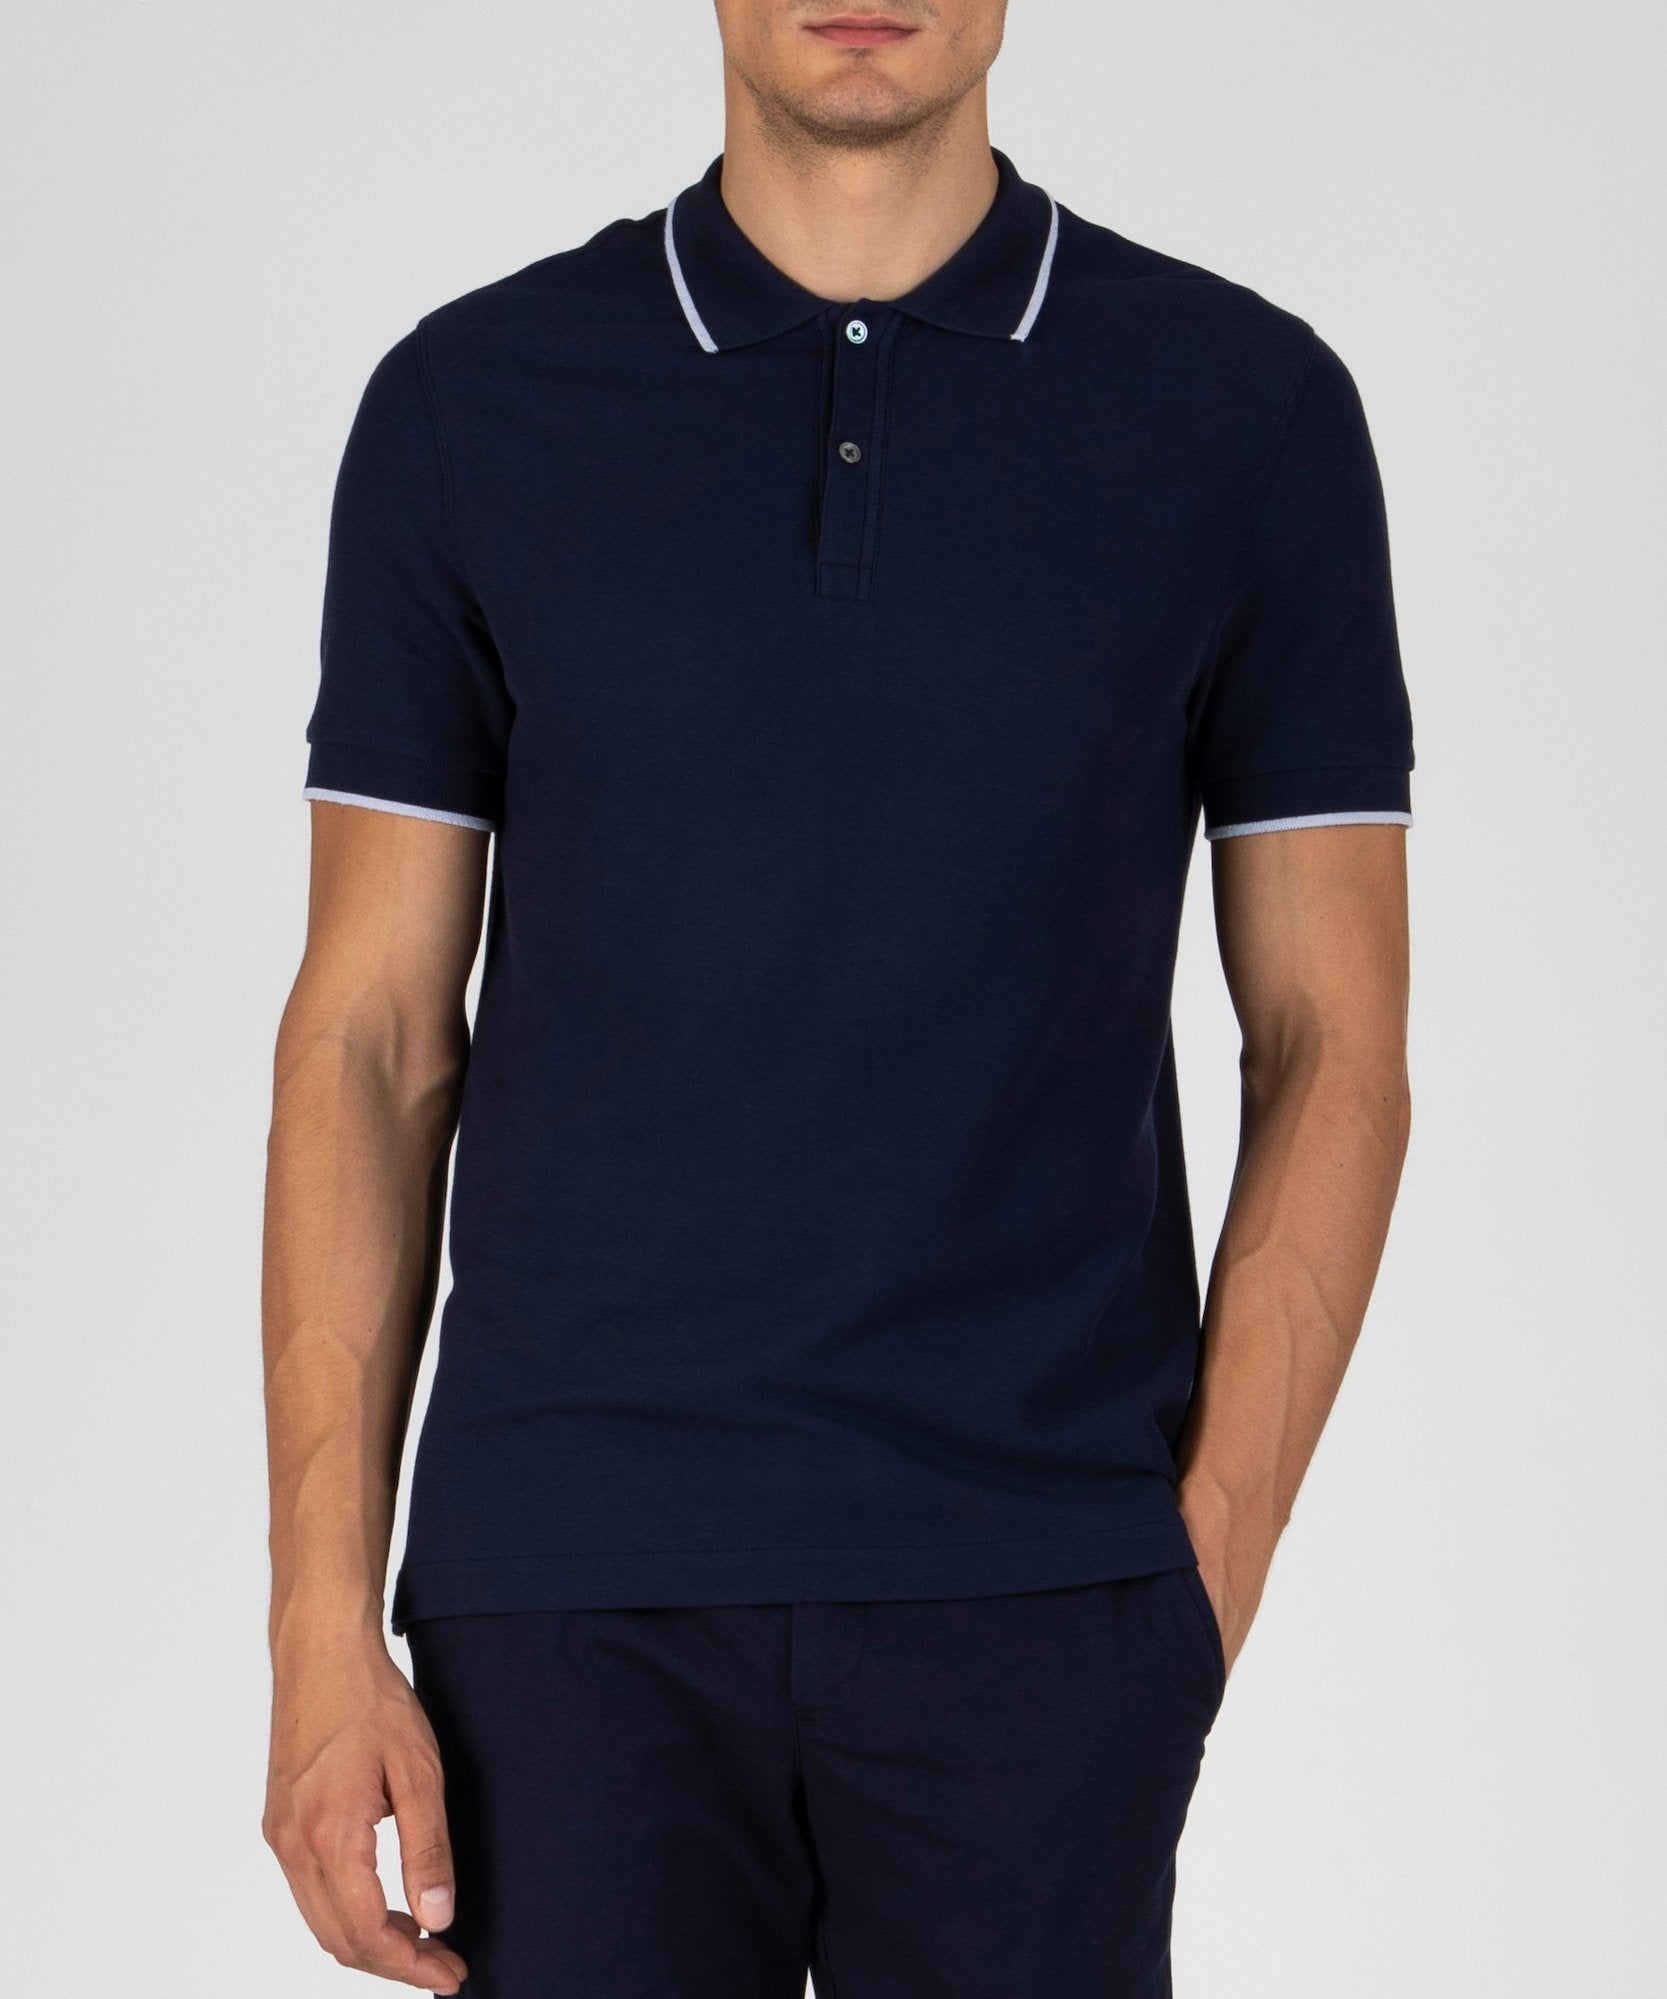 Midnight Tipped Pique Polo - Men's Polo Shirt by ATM Anthony Thomas Melillo